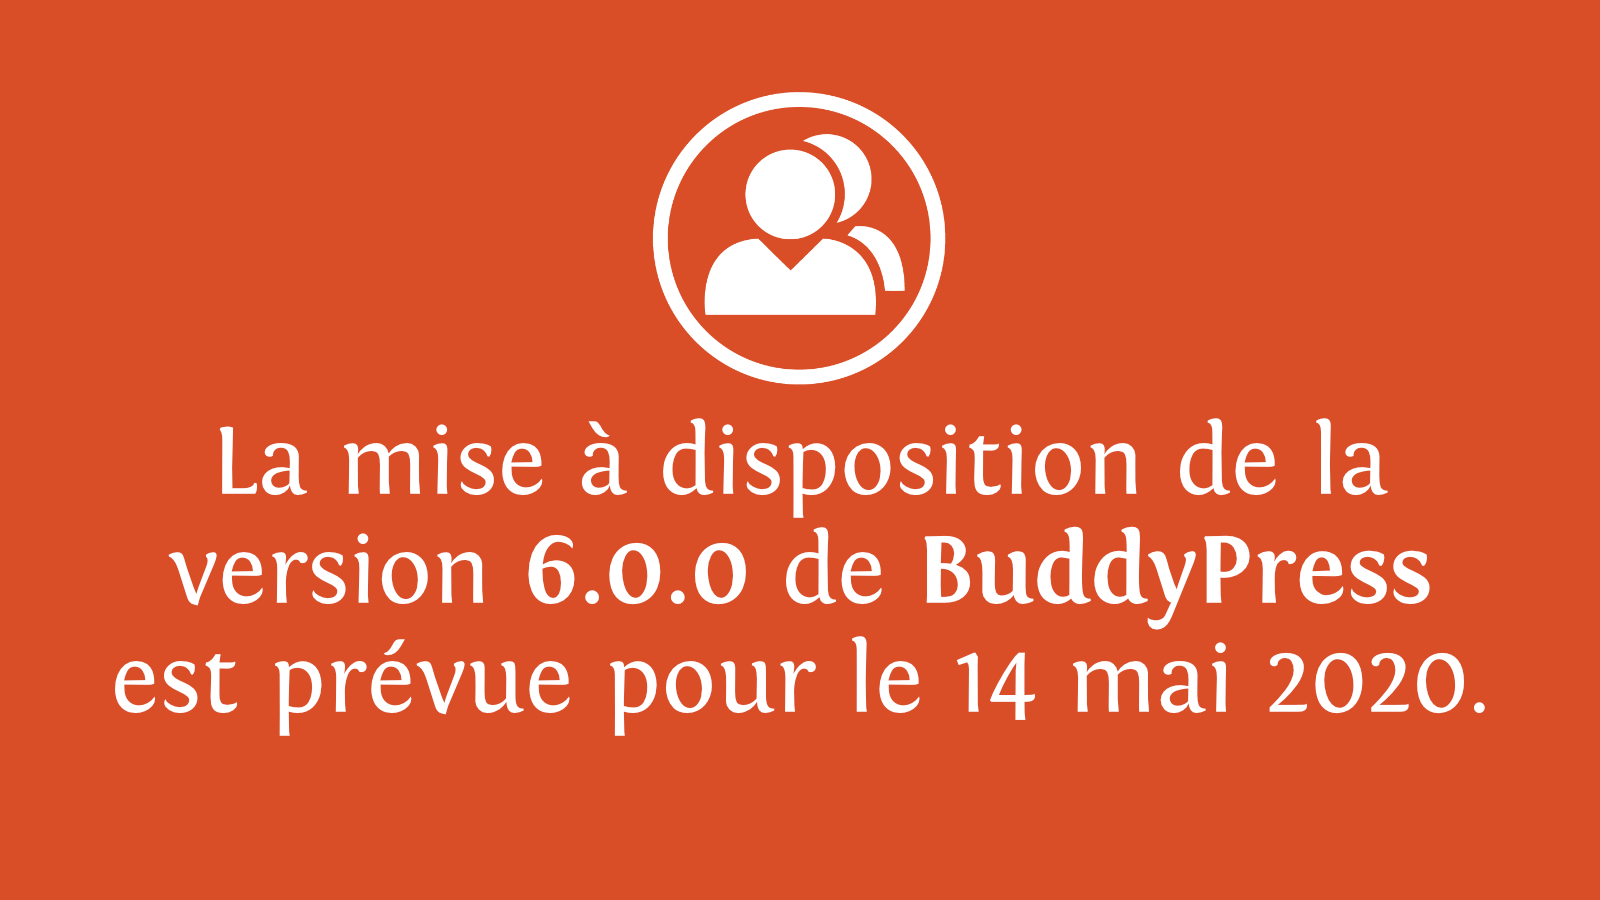 BuddyPress 6.0.0 sera disponible à partir du 14 mai 2020